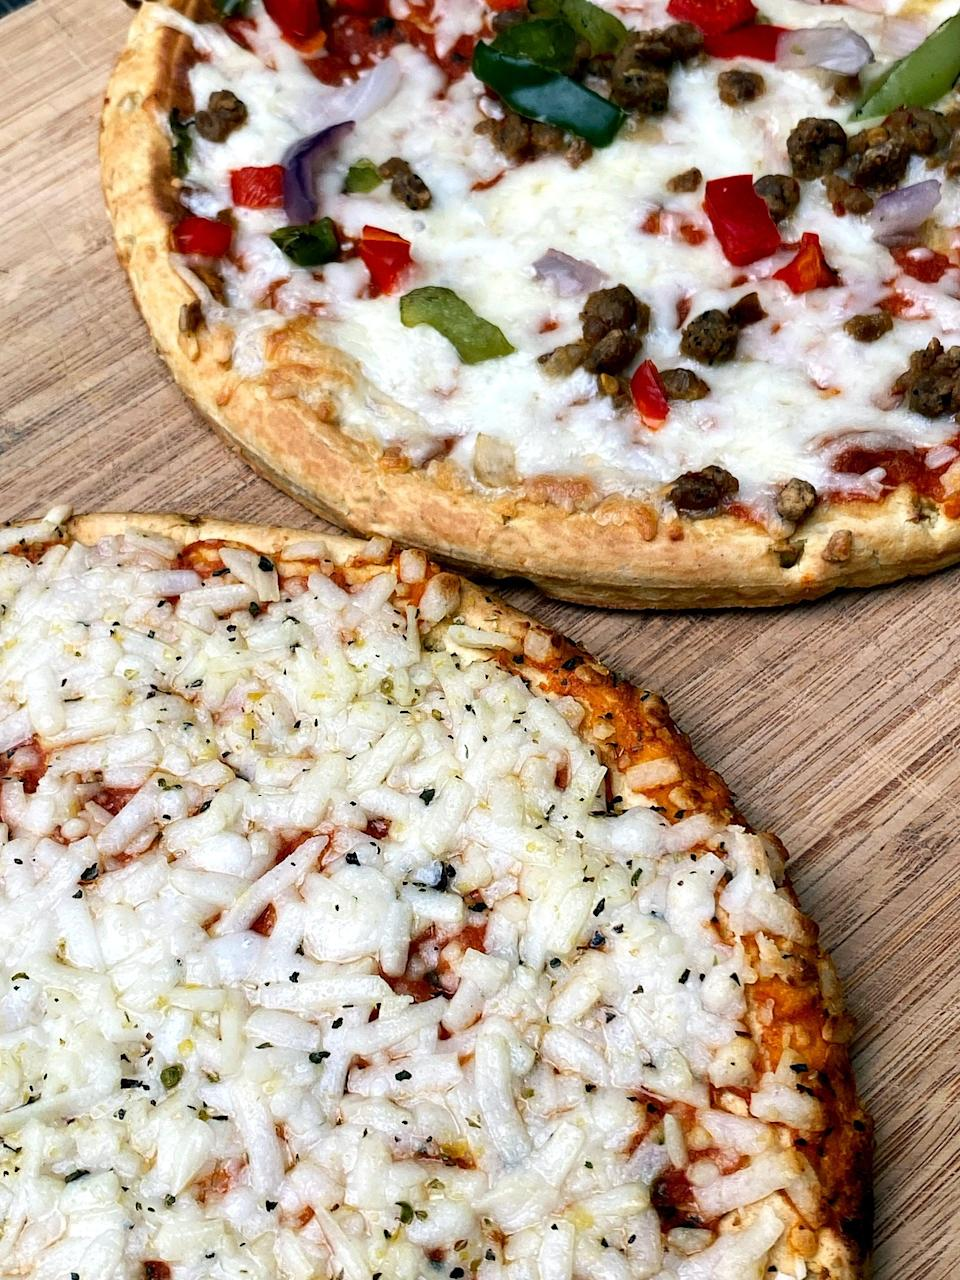 <p>Here's what the Banza frozen pizzas look like after cooking. The Supreme pizza took 16 minutes, and the Plant-Based Cheese took a little longer at 18 minutes.</p>